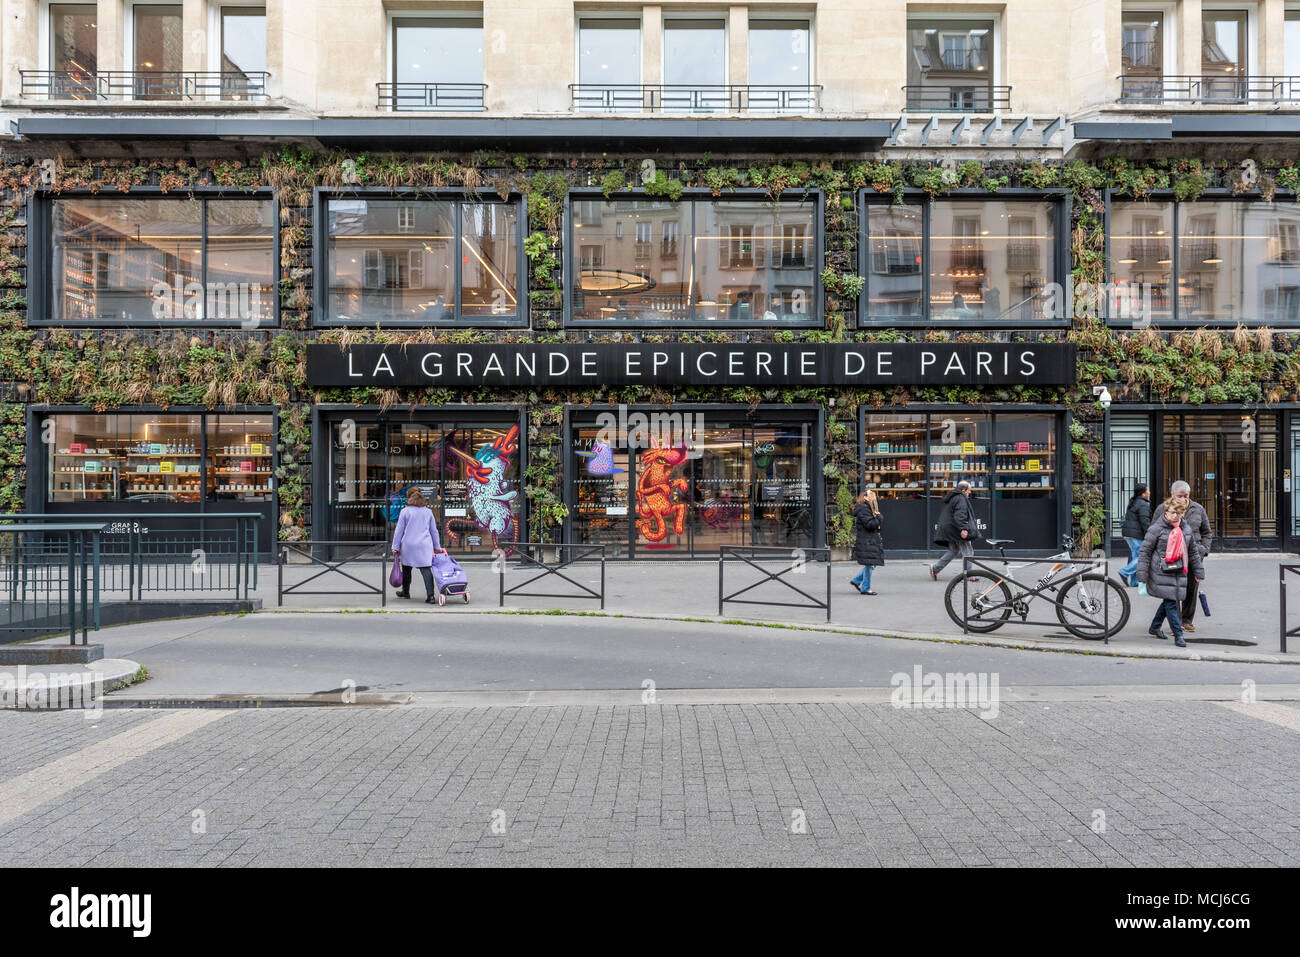 France, Paris - 31 March 2018: La grande epiceries de Paris - Rive droite 16eme Stock Photo